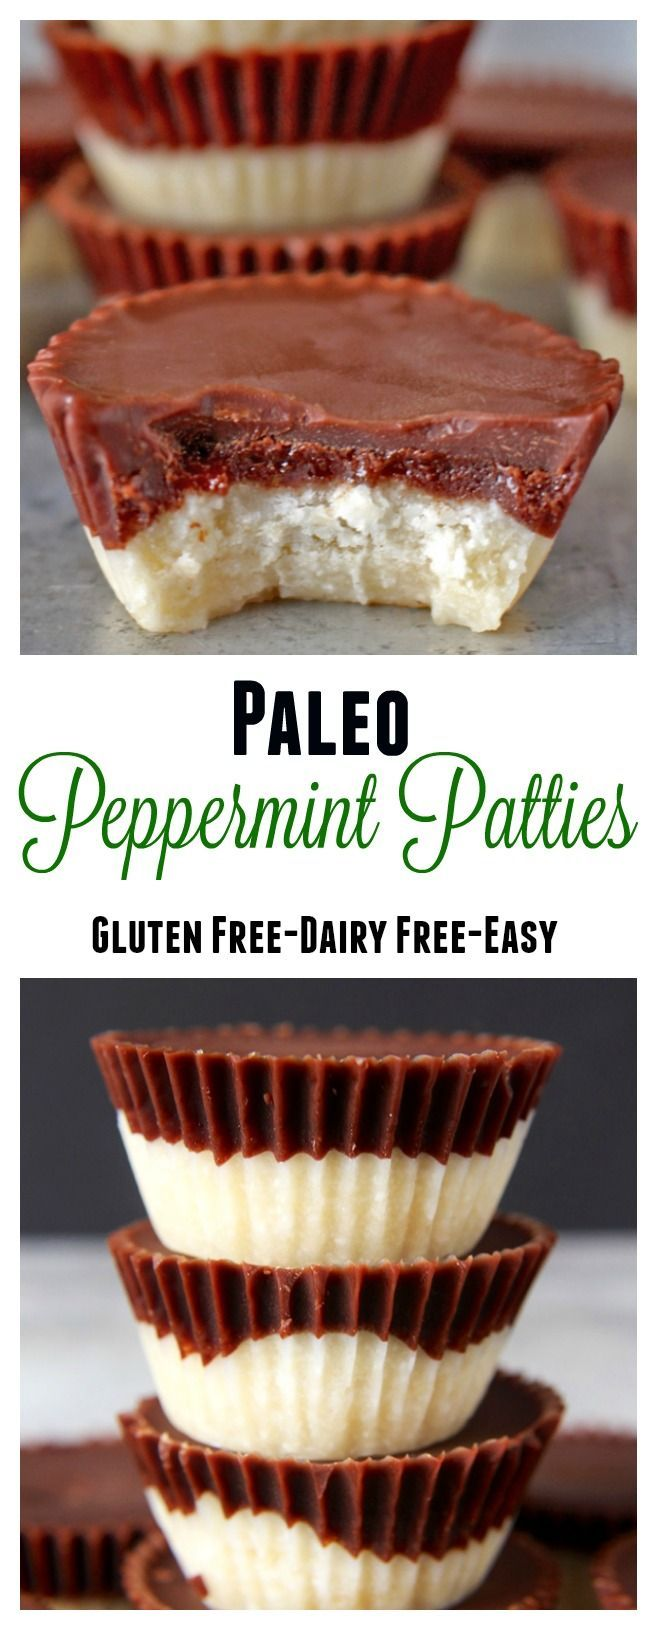 56 best images about Healthy Dessert Recipes on Pinterest